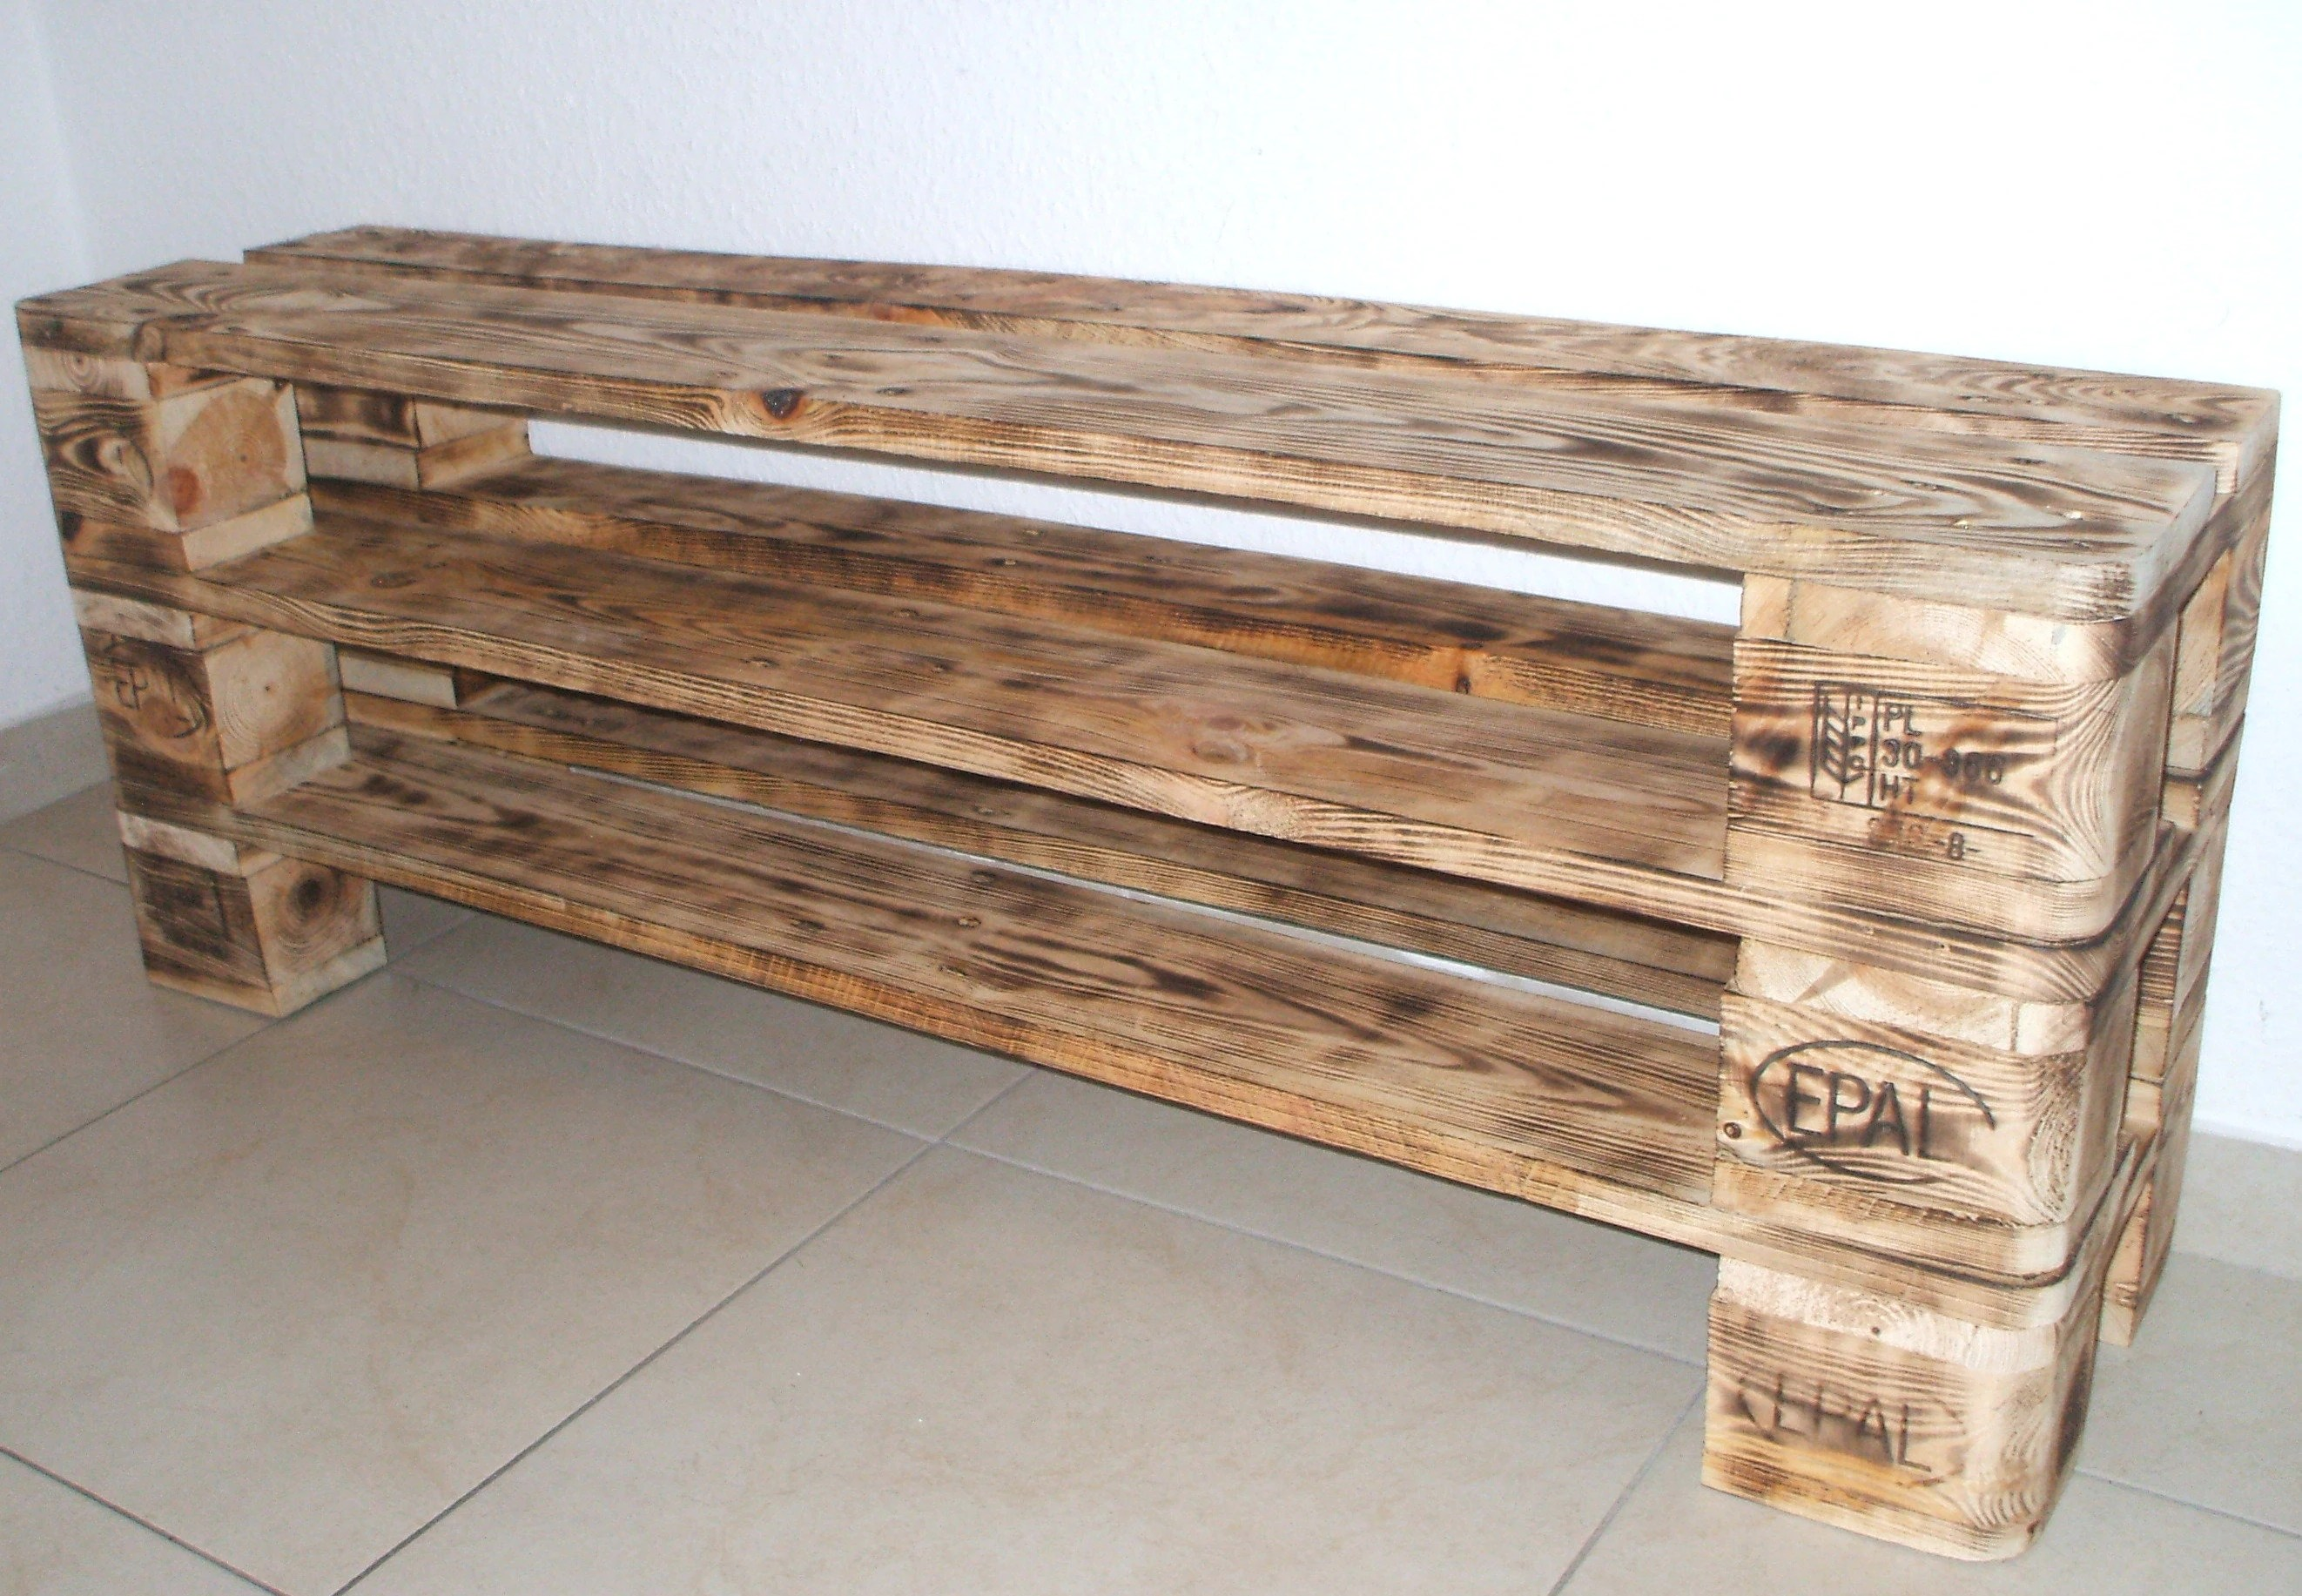 Palettenmöbel Geflammt Shoe Rack Versen With 3 Floors Geflammt Made Of Pallets